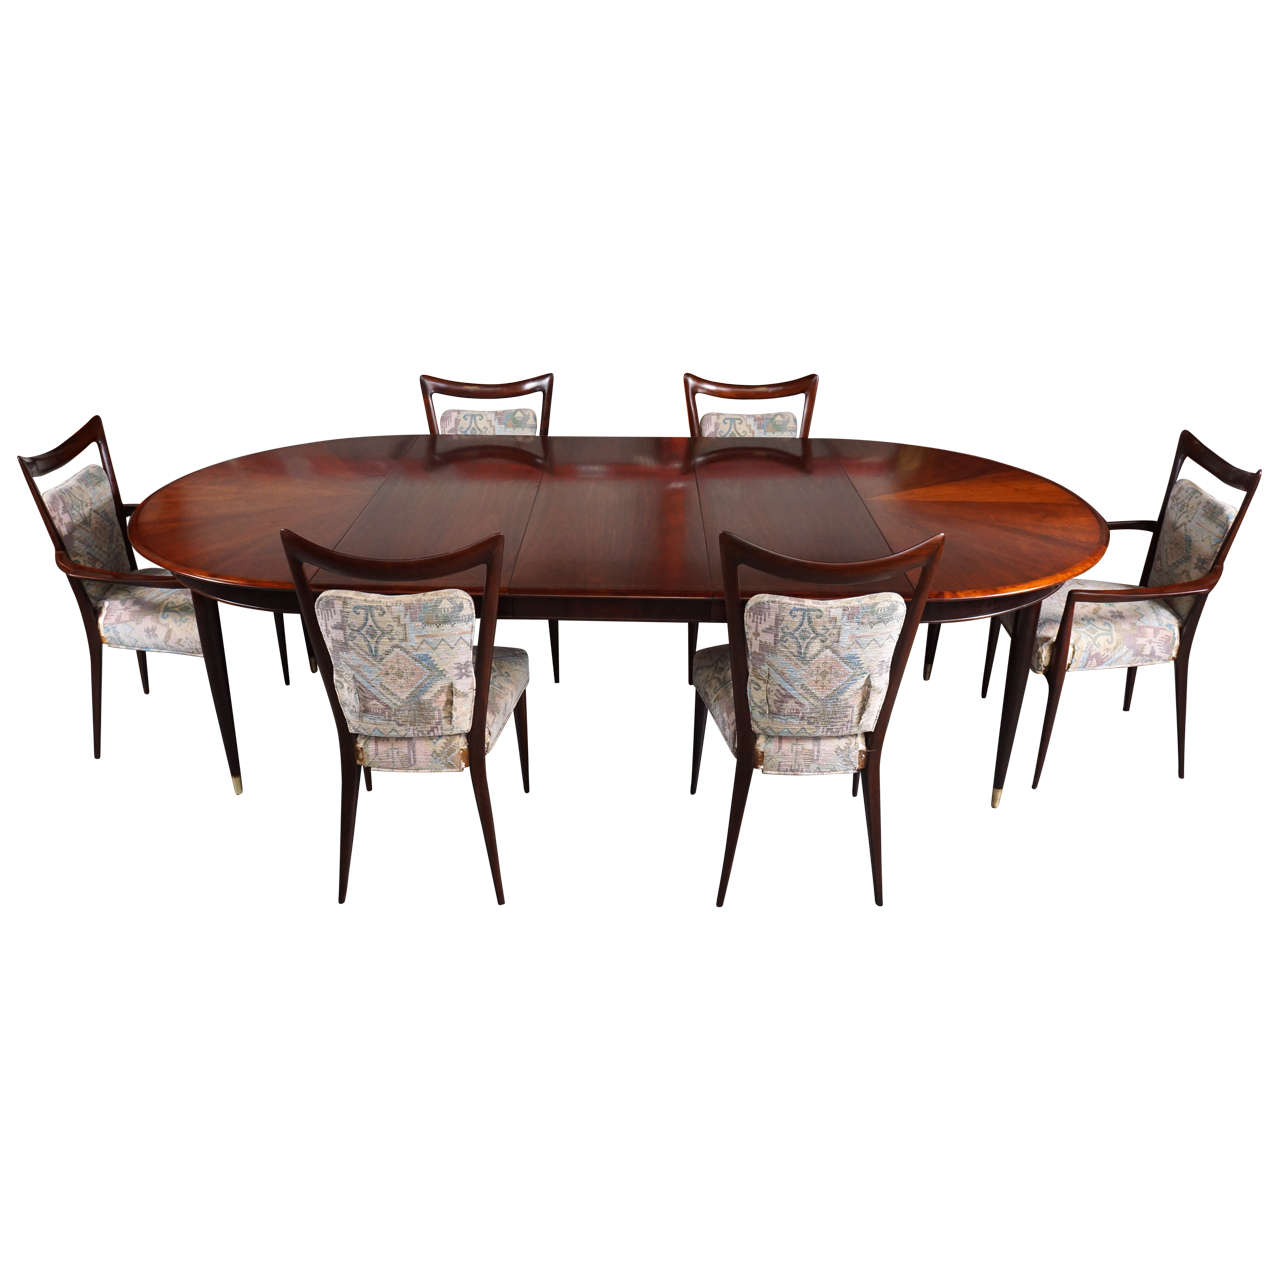 Melchiorre Bega Mahogany Dining Set 10 Chairs Table With Three Leaves Italy For